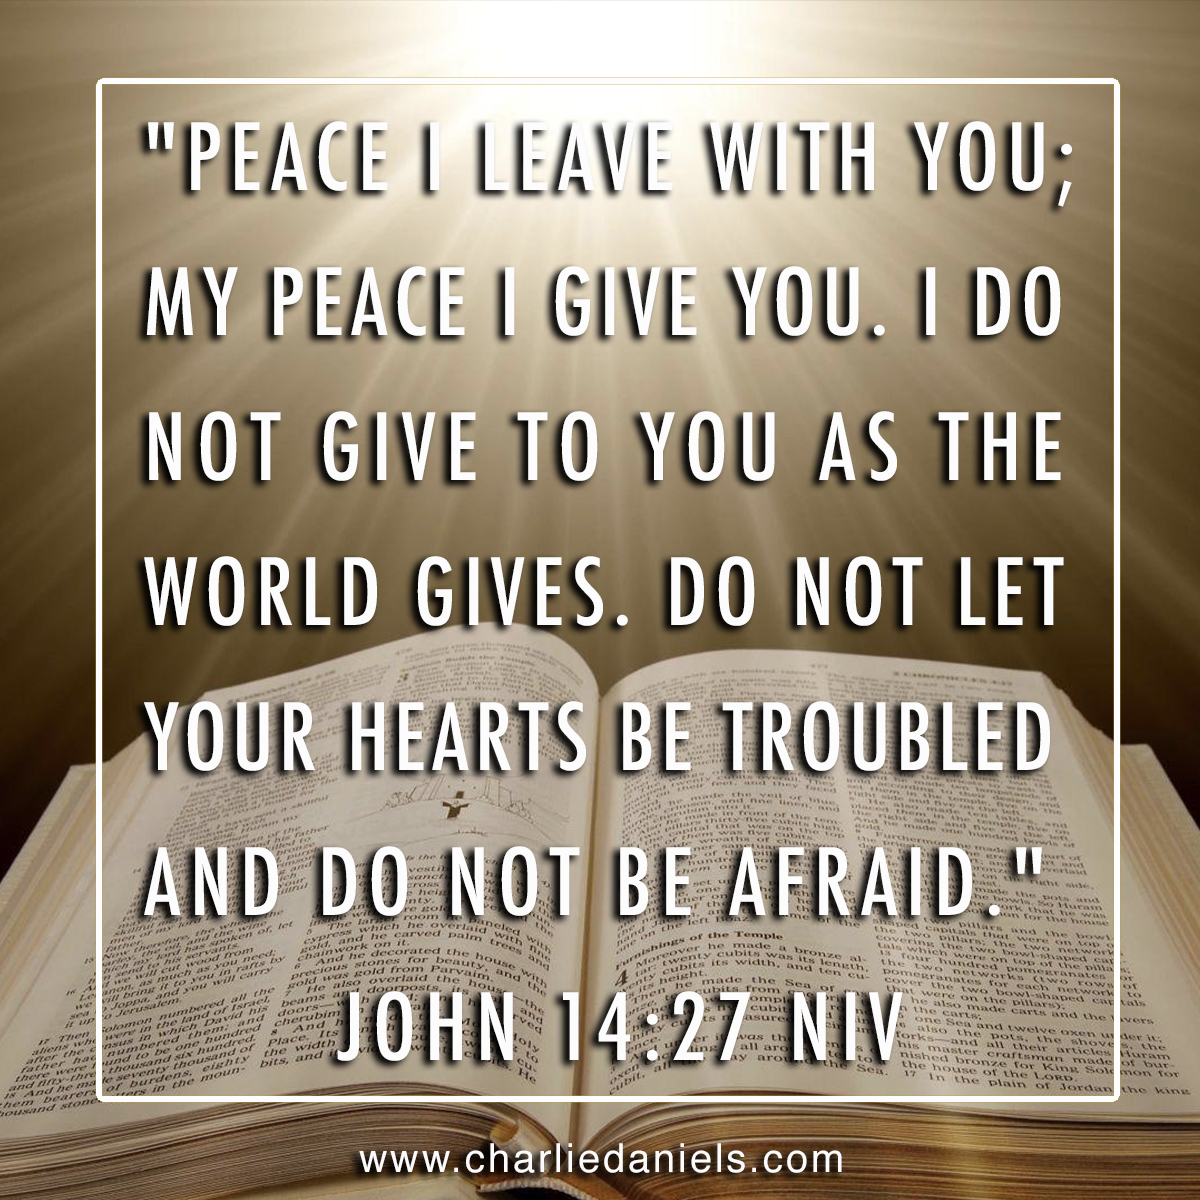 """Peace I leave with you; my peace I give you. I do not give to you as the world gives. Do not let your hearts be troubled and do not be afraid."""" - John 14:27 NIV https://t.co/Mfx07YP0z7"""